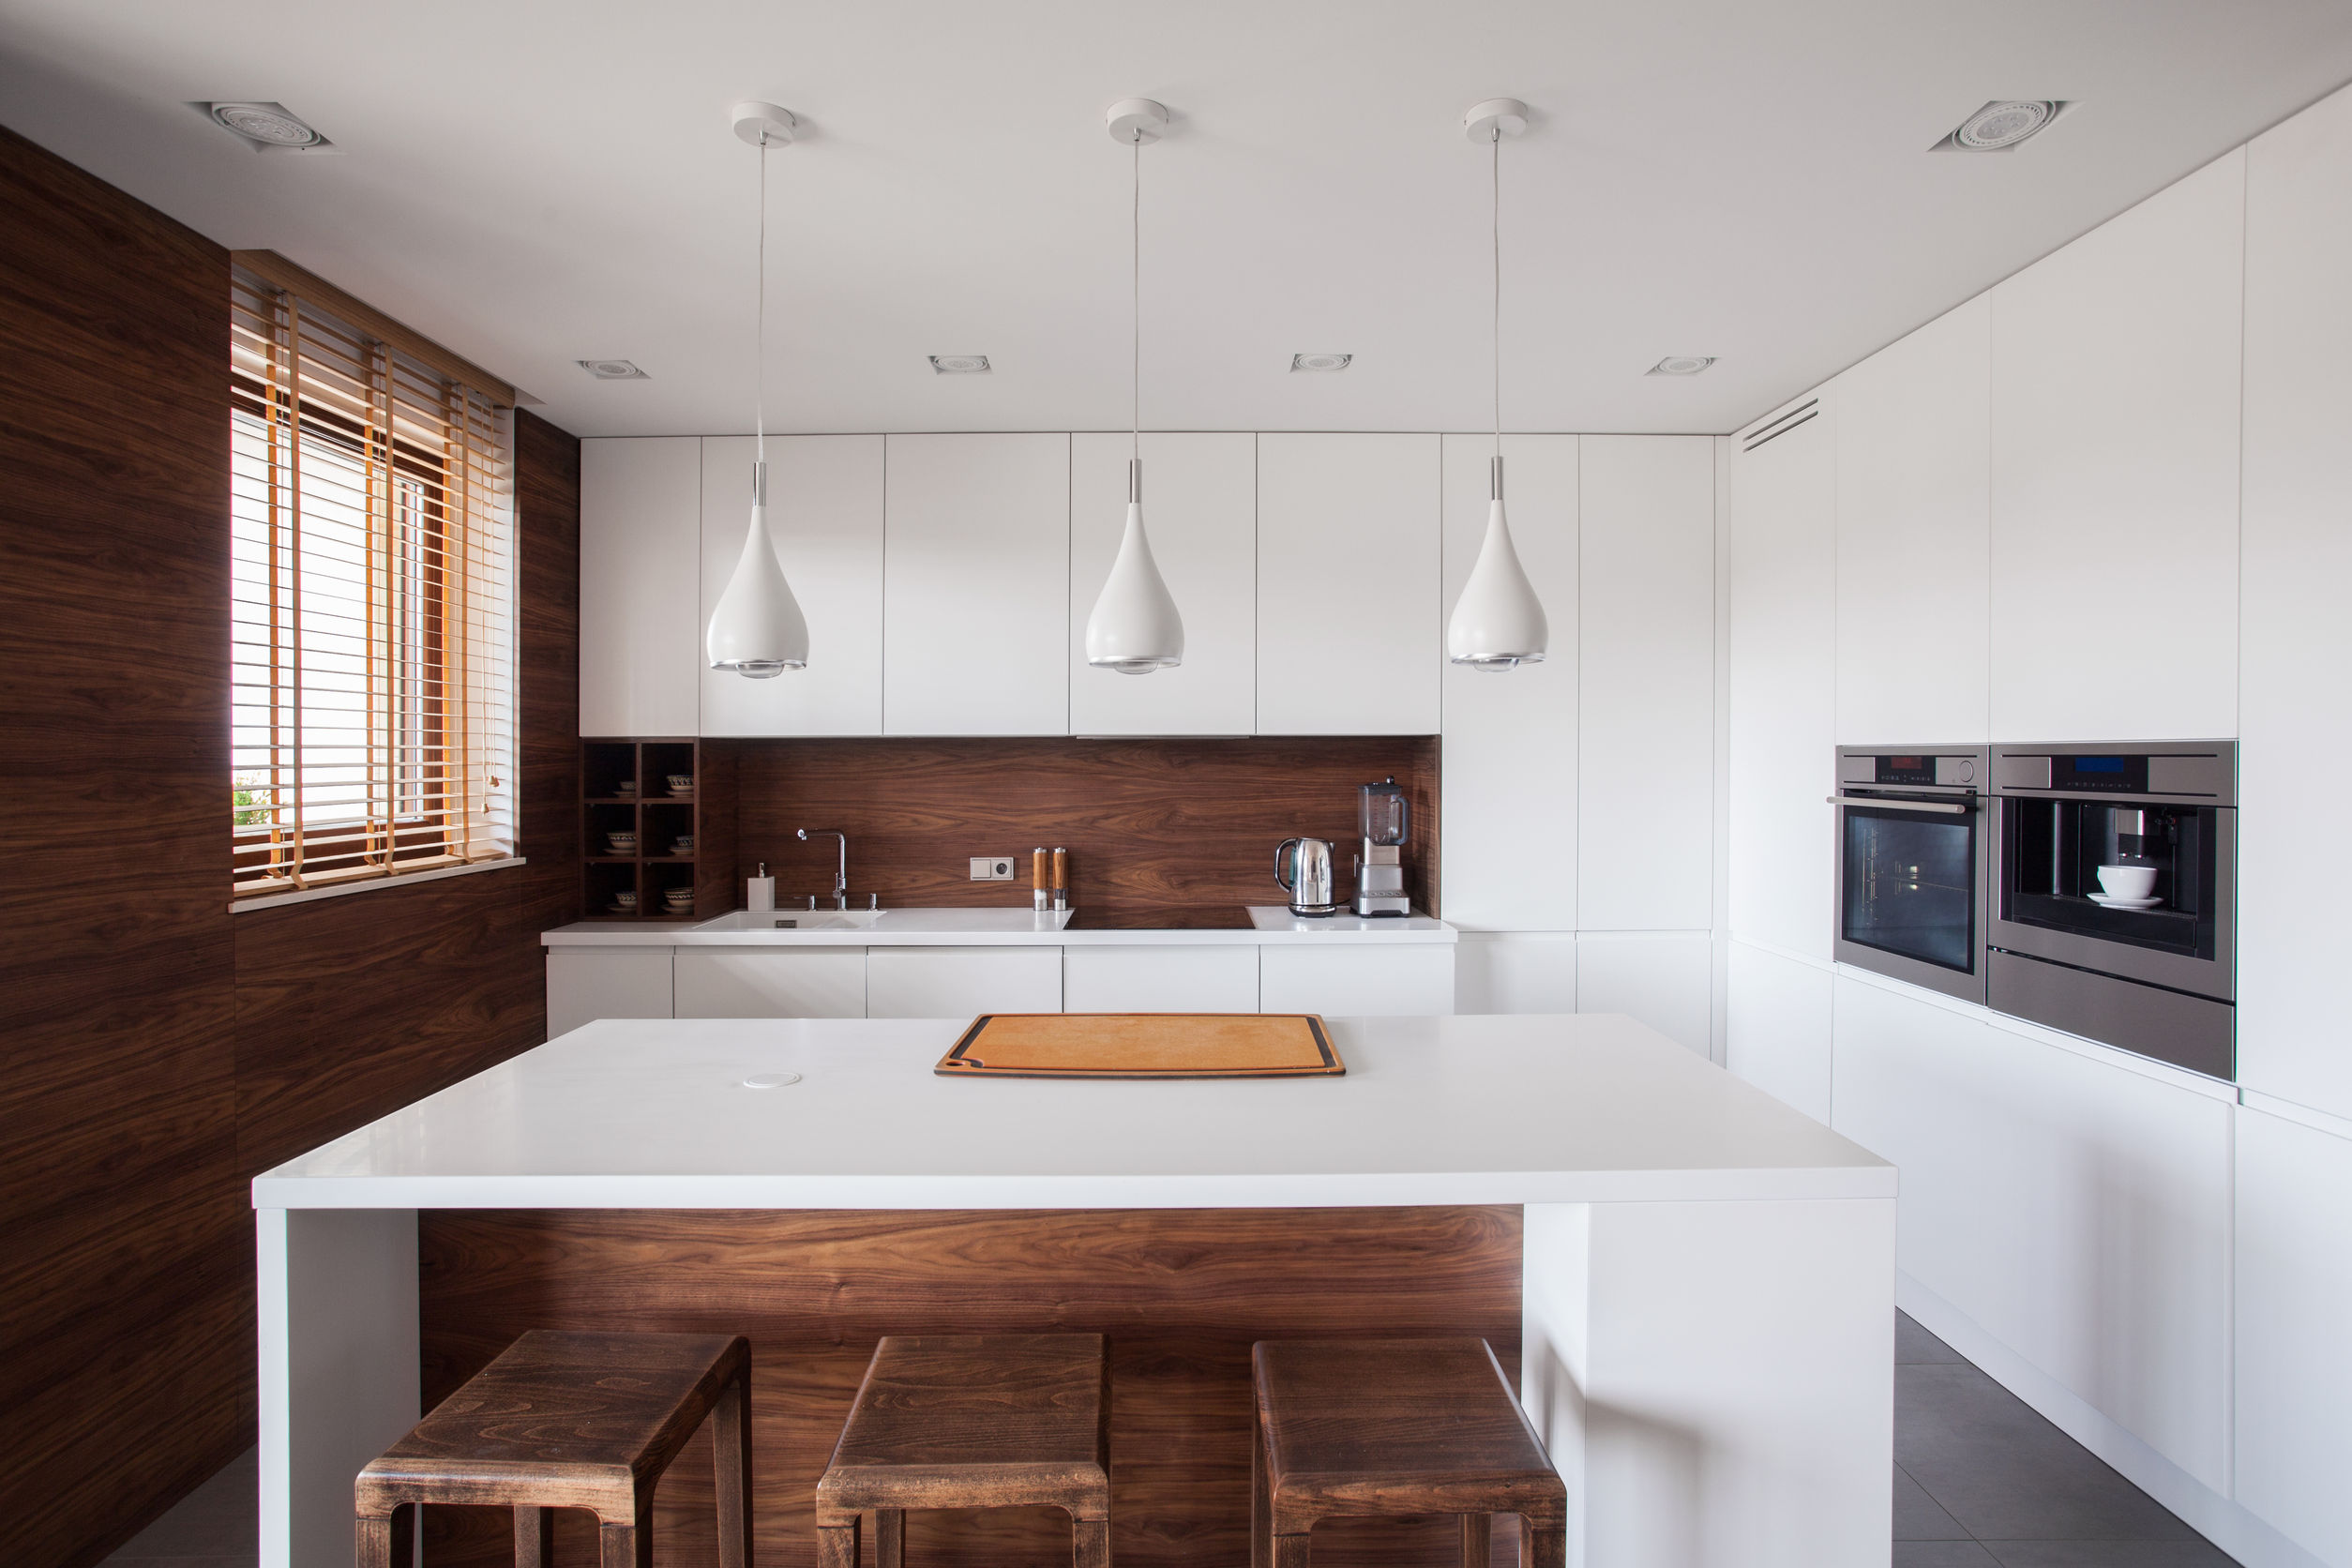 47778763 - white kitchen island in modern and wooden kitchen